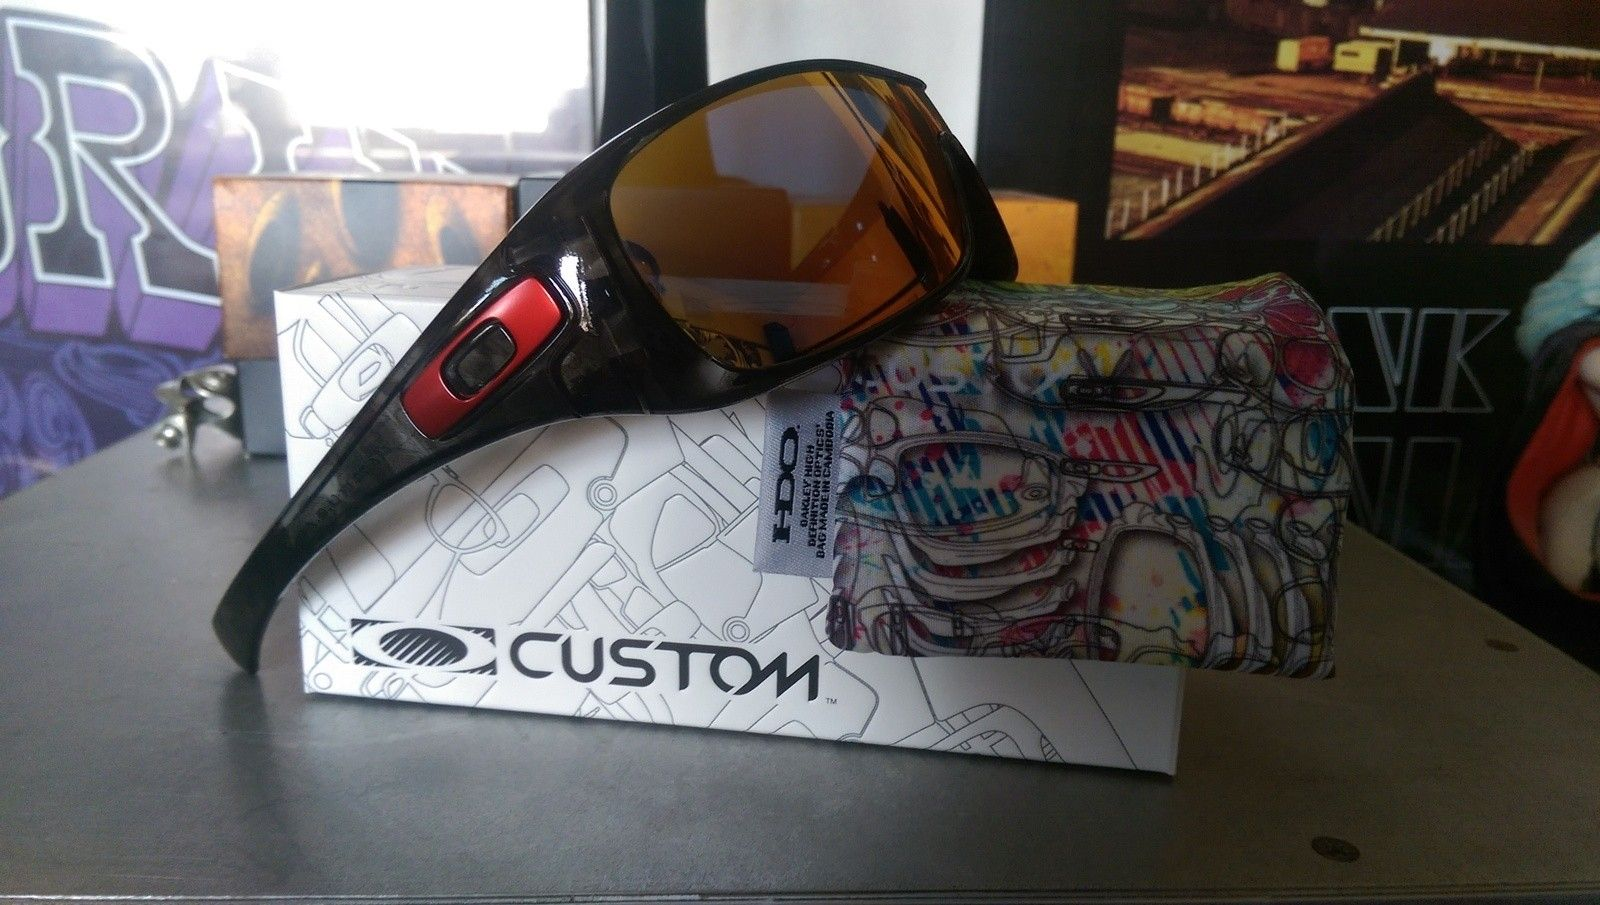 Custom Antix with Ruby Lense - IMAG2098.jpg